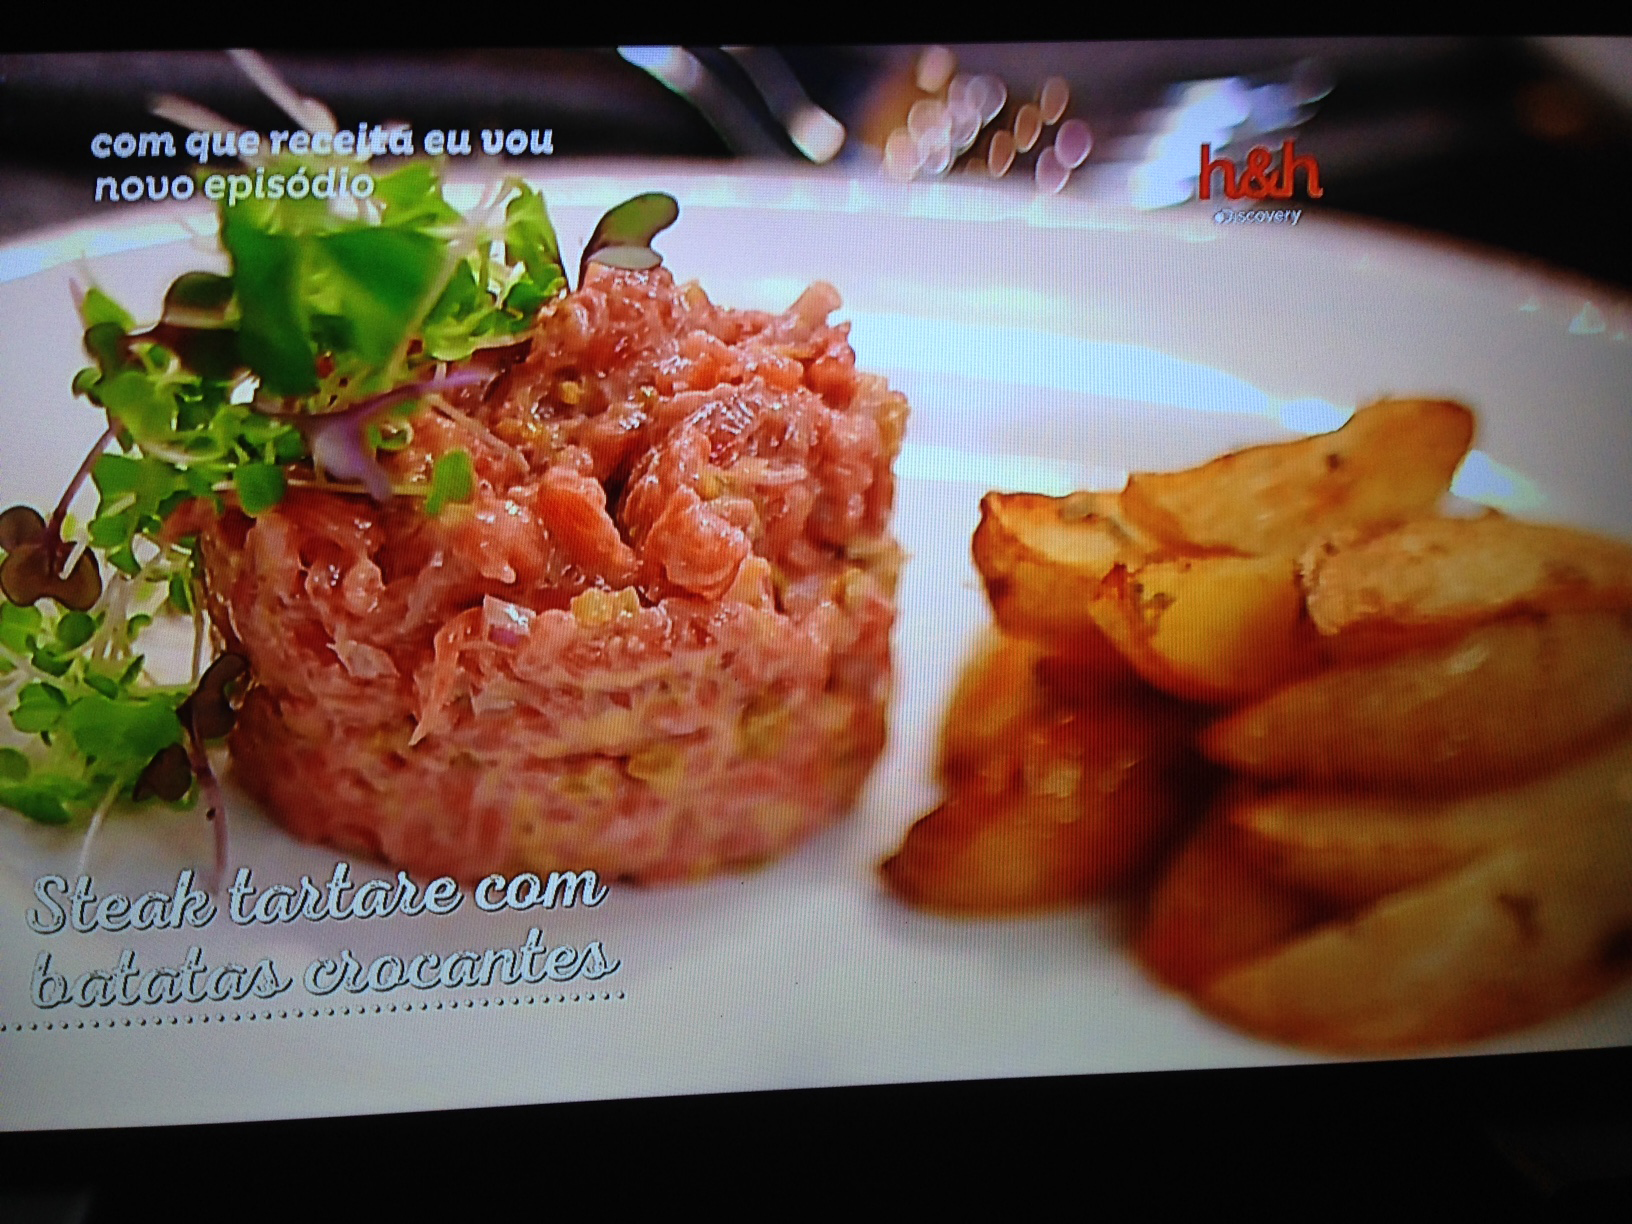 Steak Tartare - Steak Tartare